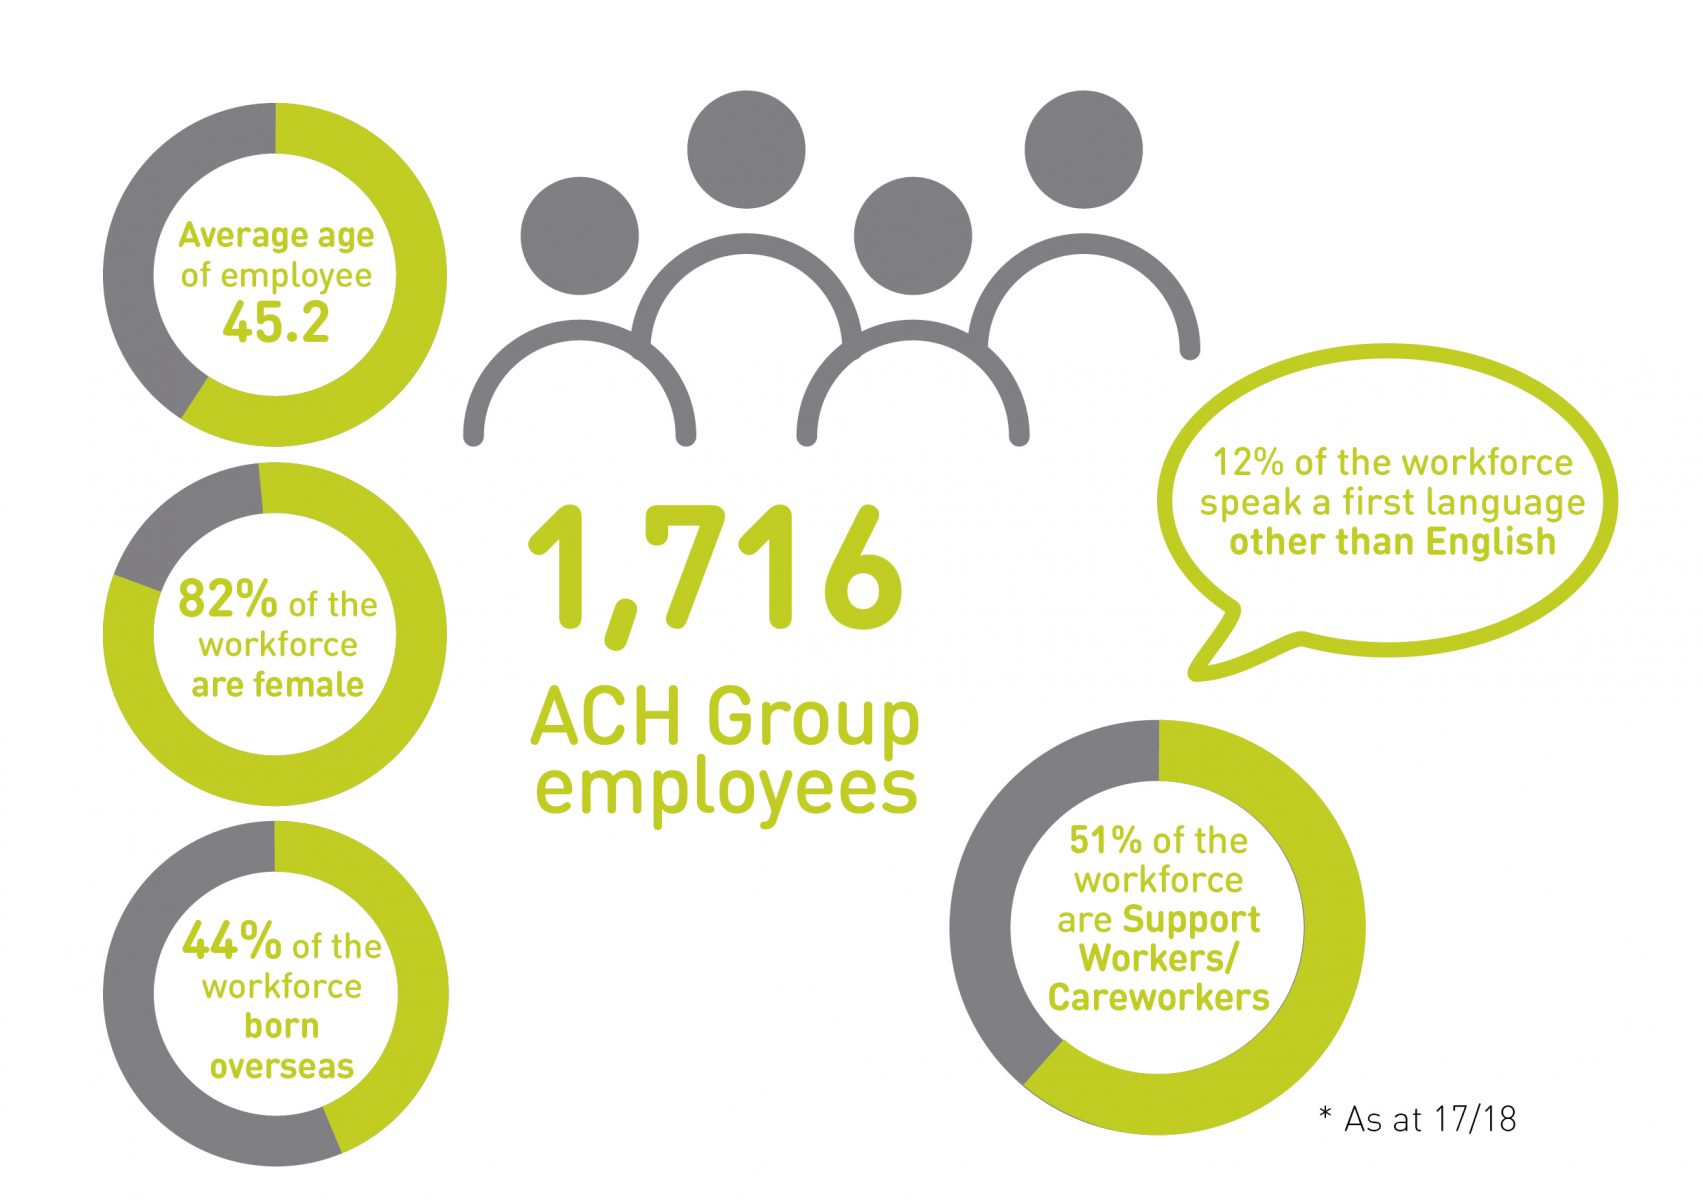 ach group employee statistic graphic